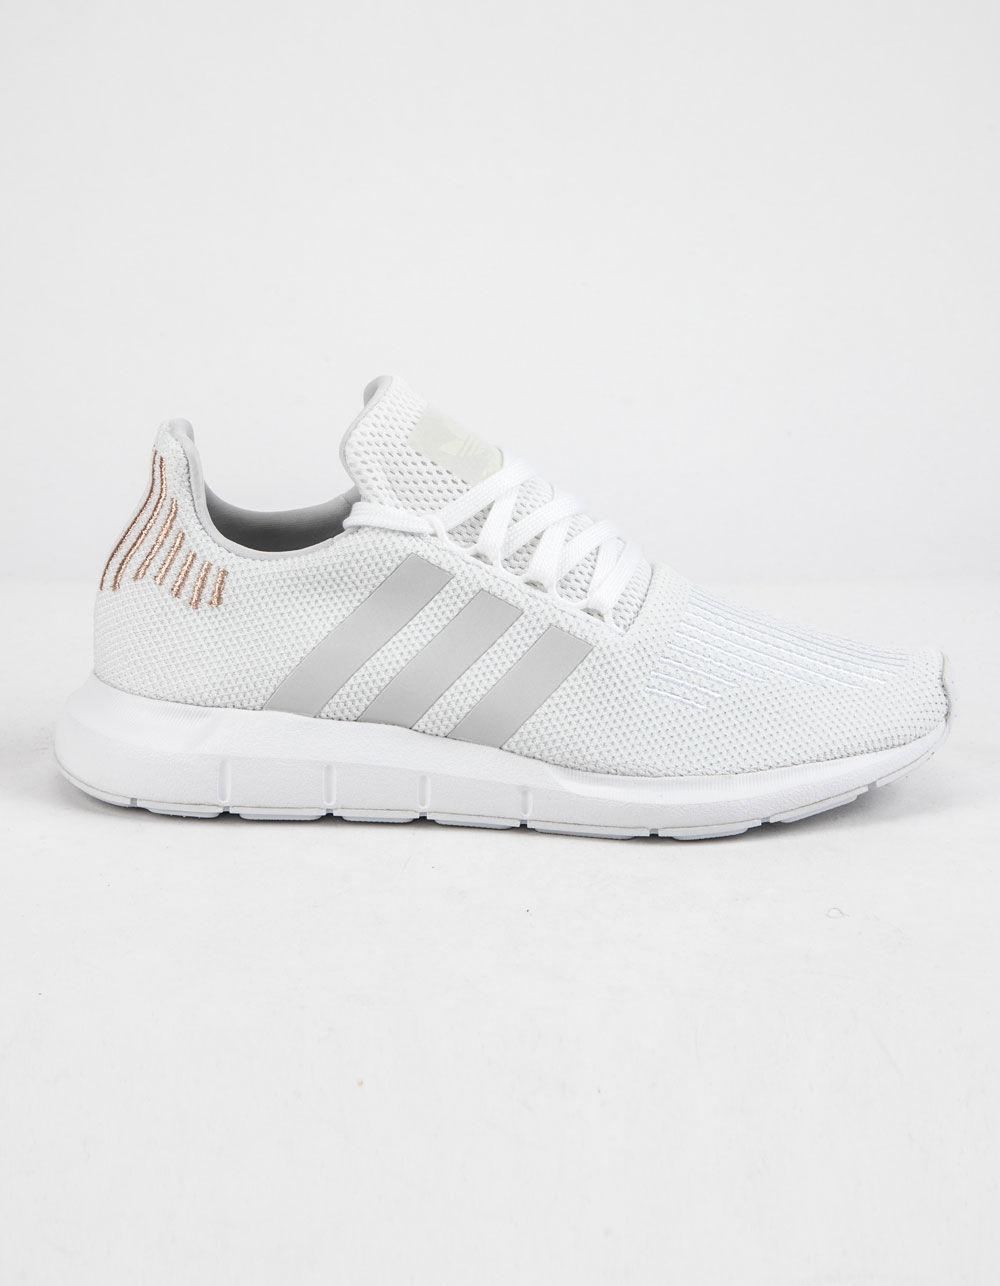 Lyst - adidas Swift Run Cloud White   Crystal White Womens Shoes in ... 9941dc8d24